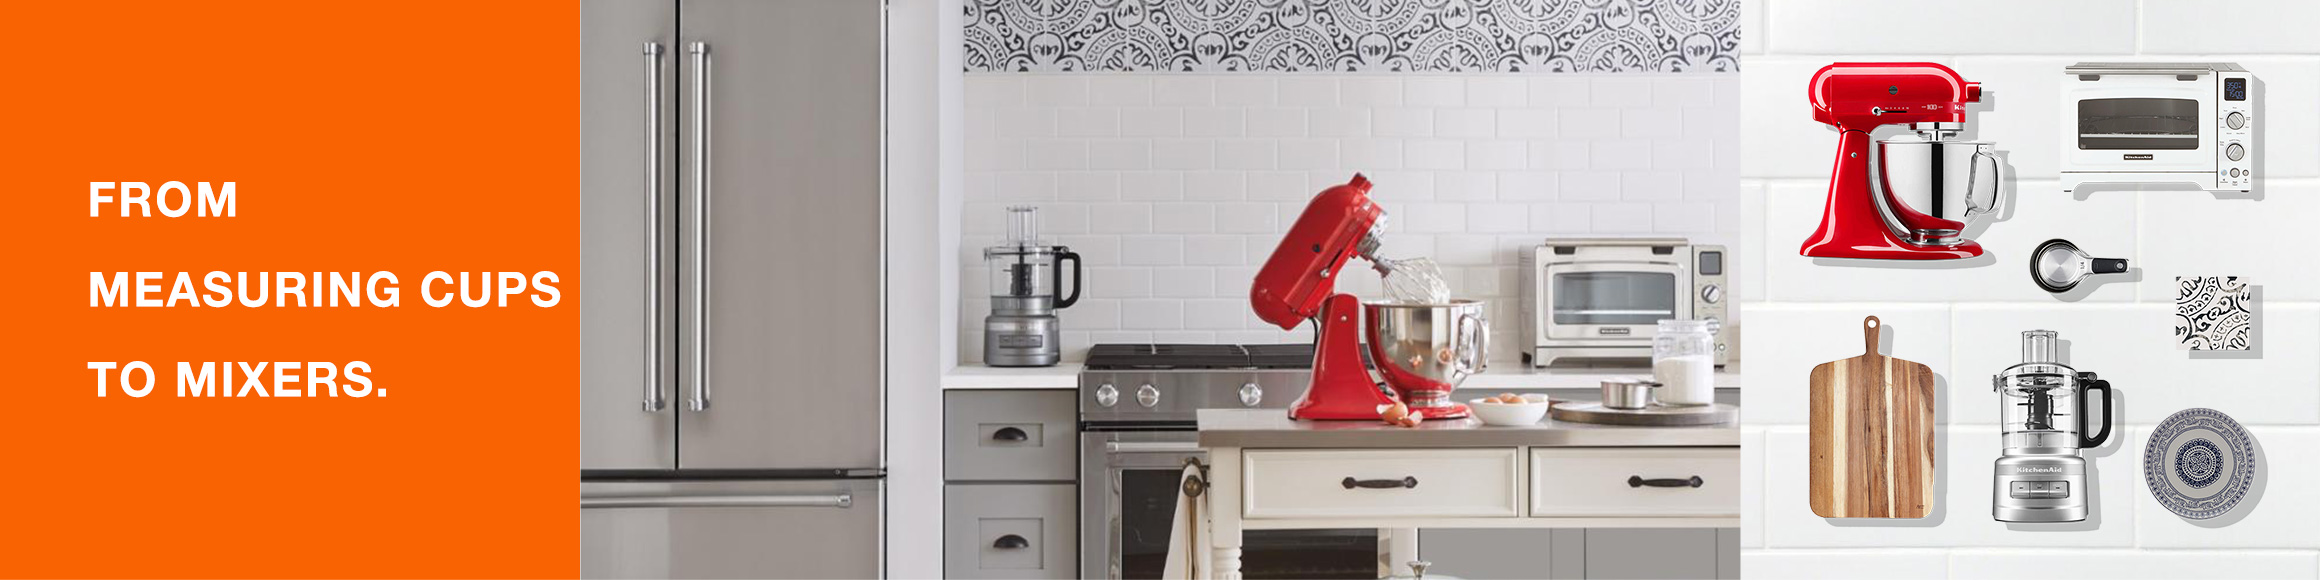 From Measuring Cups to Mixers.